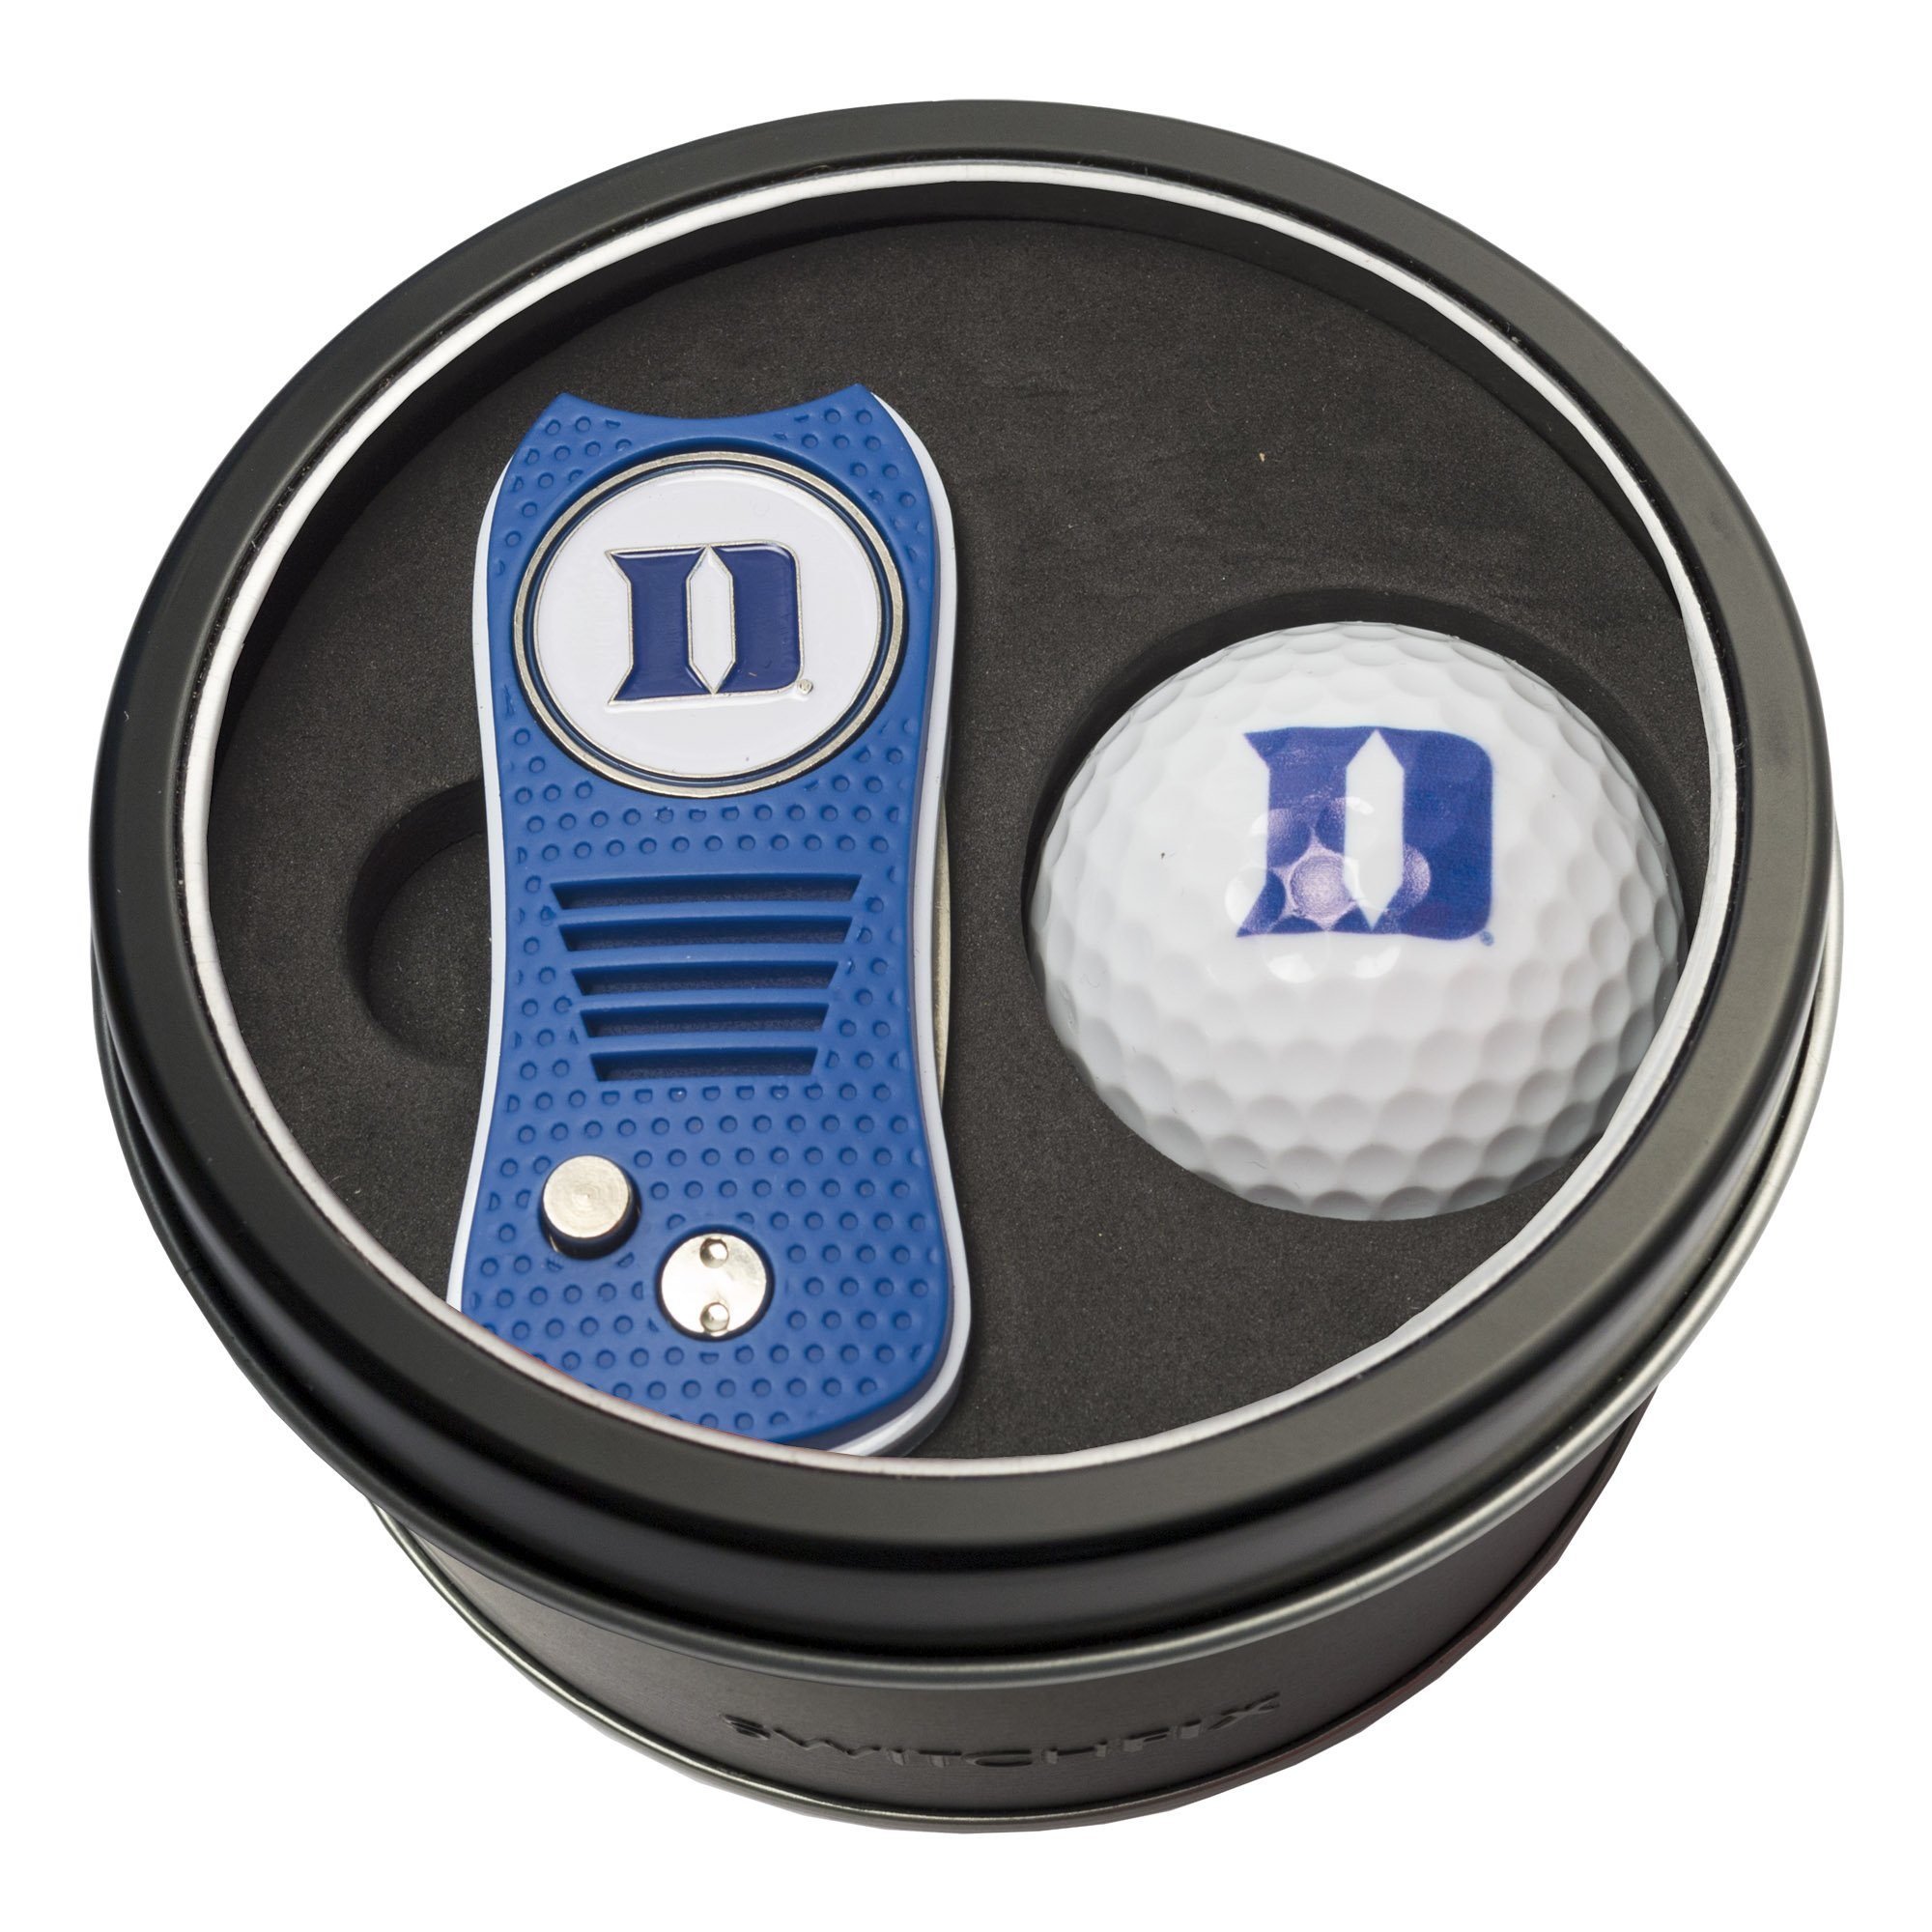 Team Golf NCAA Duke Blue Devils Gift Set Switchblade Divot Tool with Double-Sided Magnetic Ball Marker & Golf Ball, Patented Single Prong Design, Less Damage to Greens, Switchblade Mechanism by Team Golf